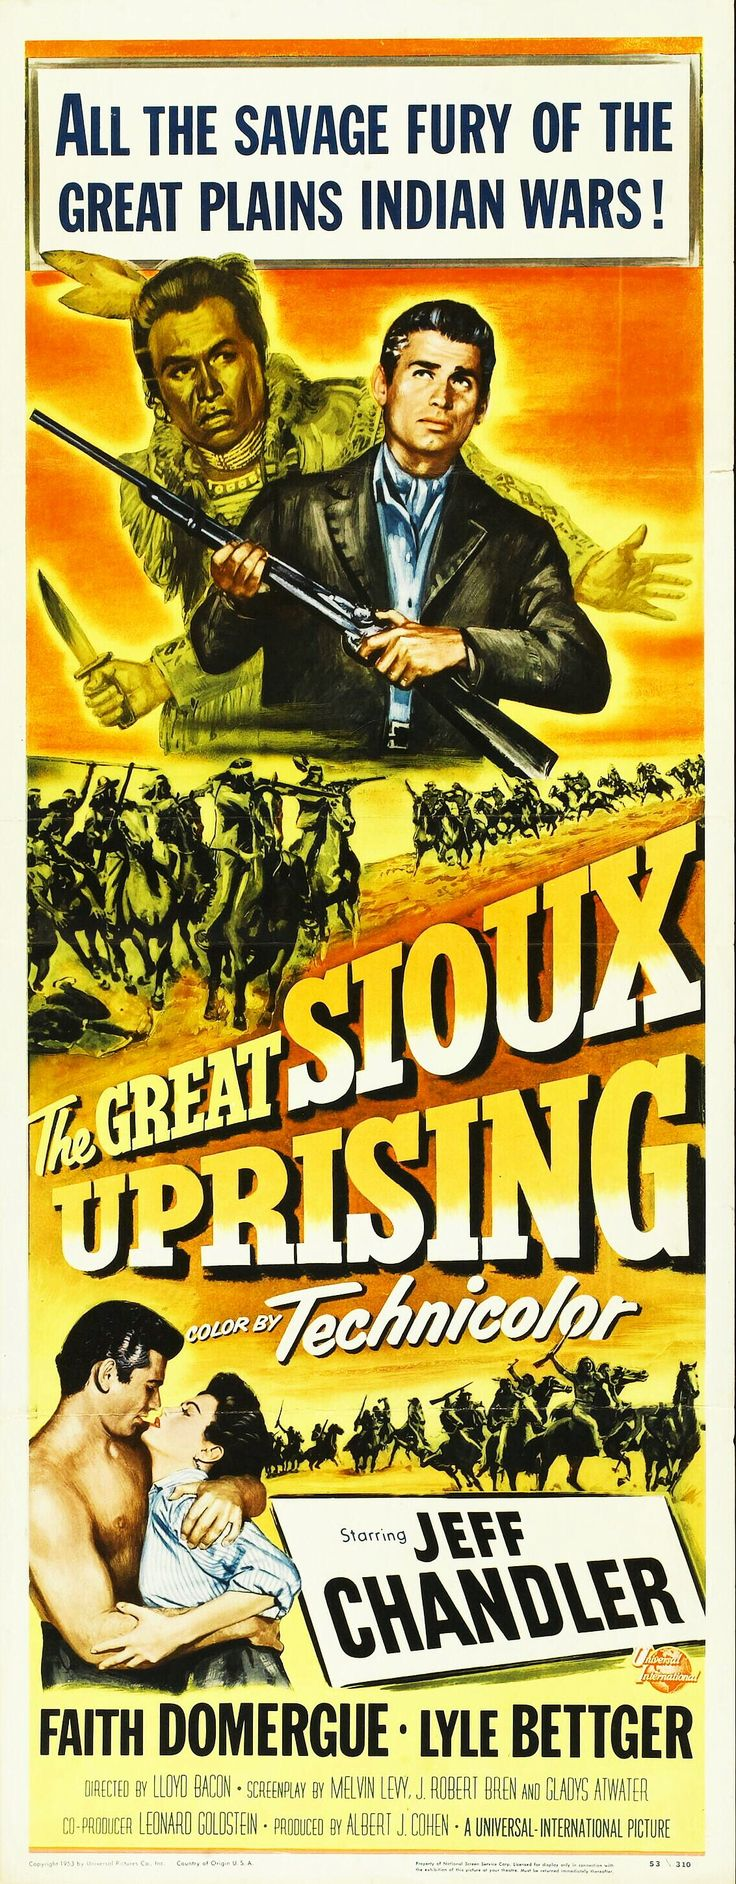 THE GREAT SIOUX UPRISING (1953) - Jeff Chandler - Faith Domergue - Lyle Bettger - Directed by Lloyd Bacon - Universal-International Pictures - Insert Movie Poster.